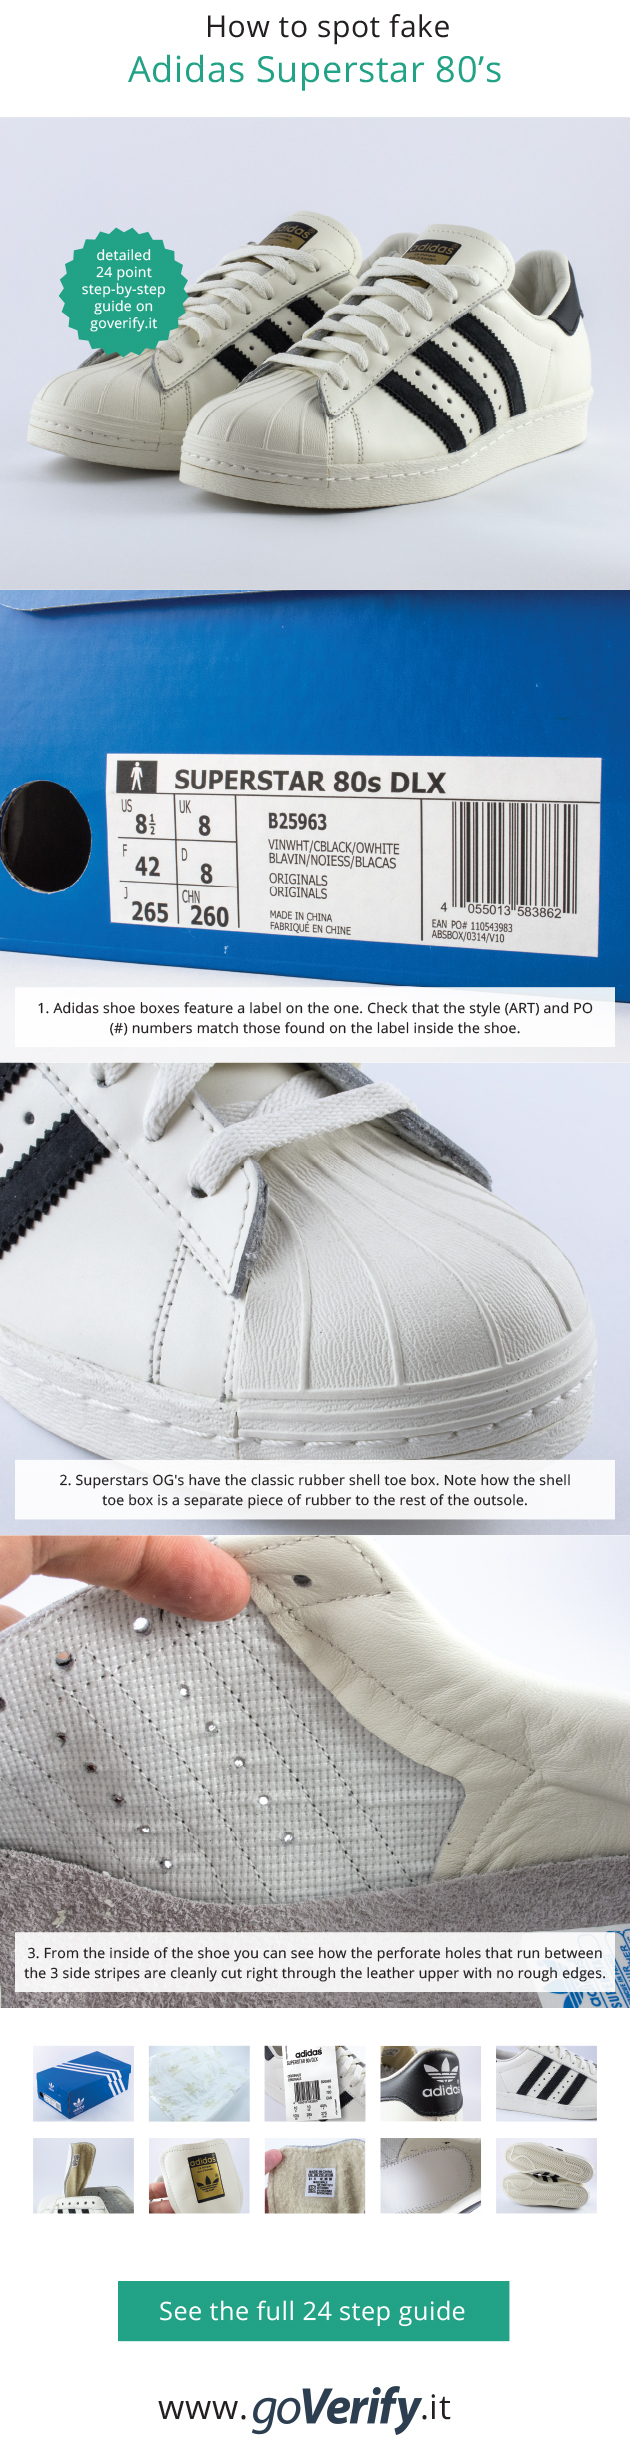 How to spot fake Adidas Superstar OG\u0027s, go to www.goverify.it for